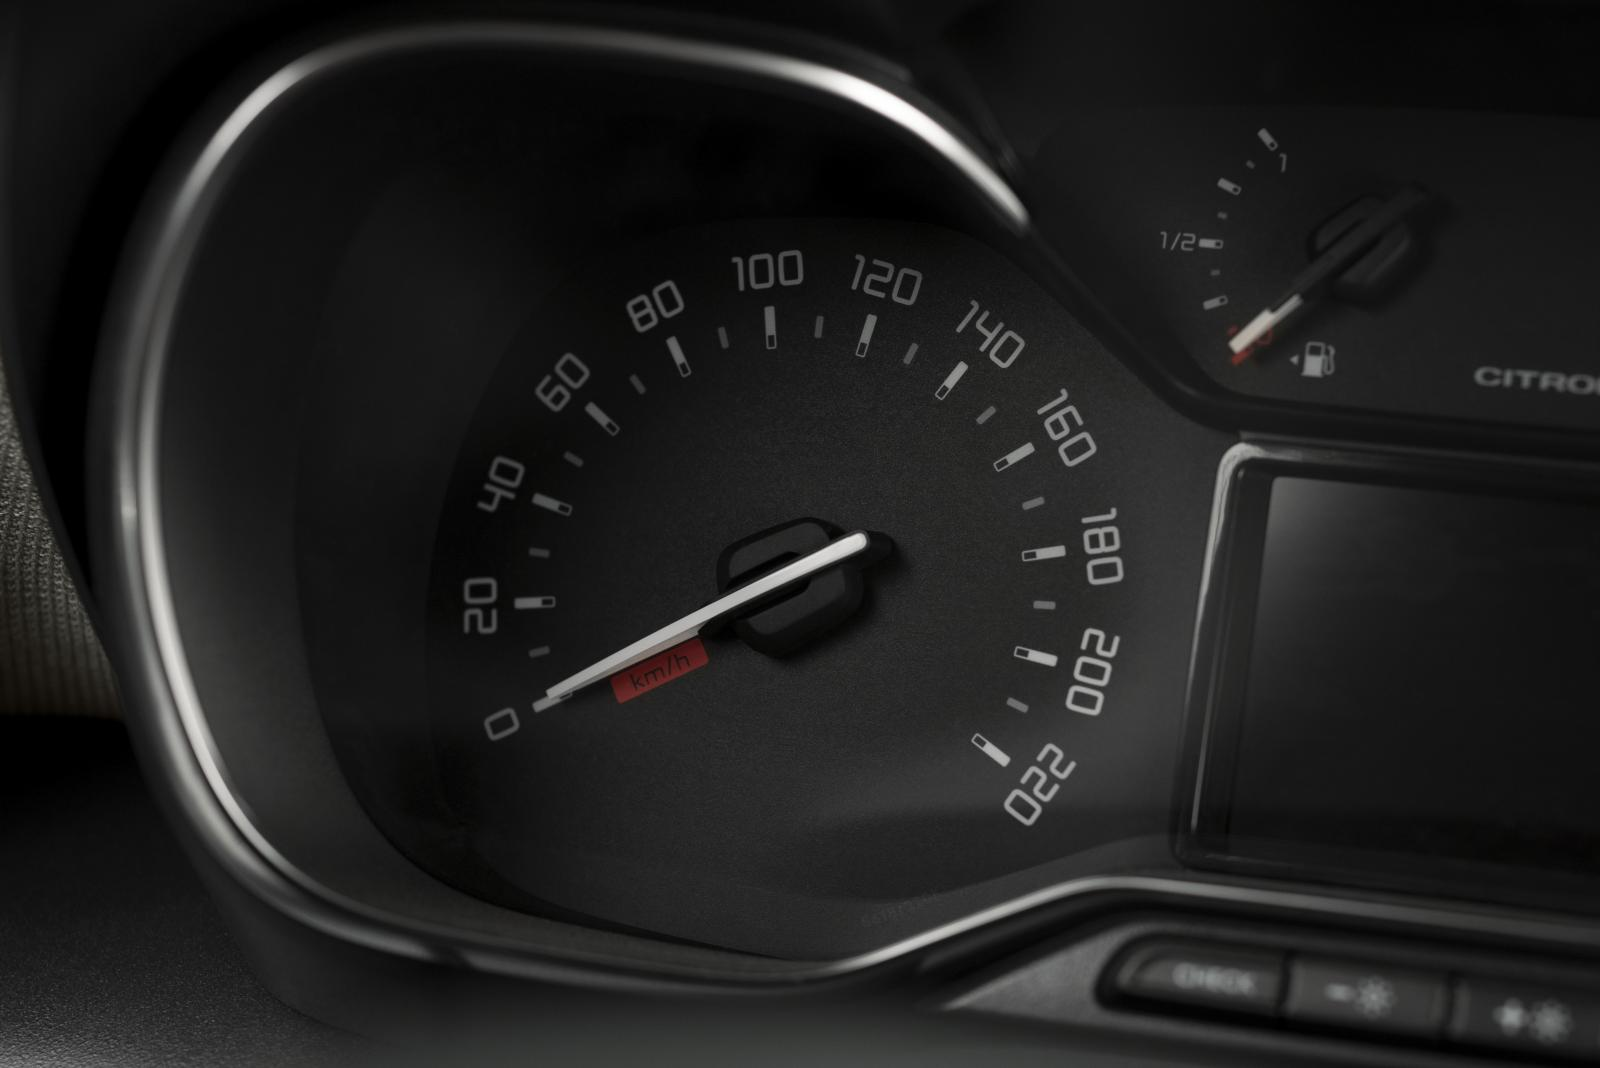 C3 Aircross Compact SUV - Speedometer